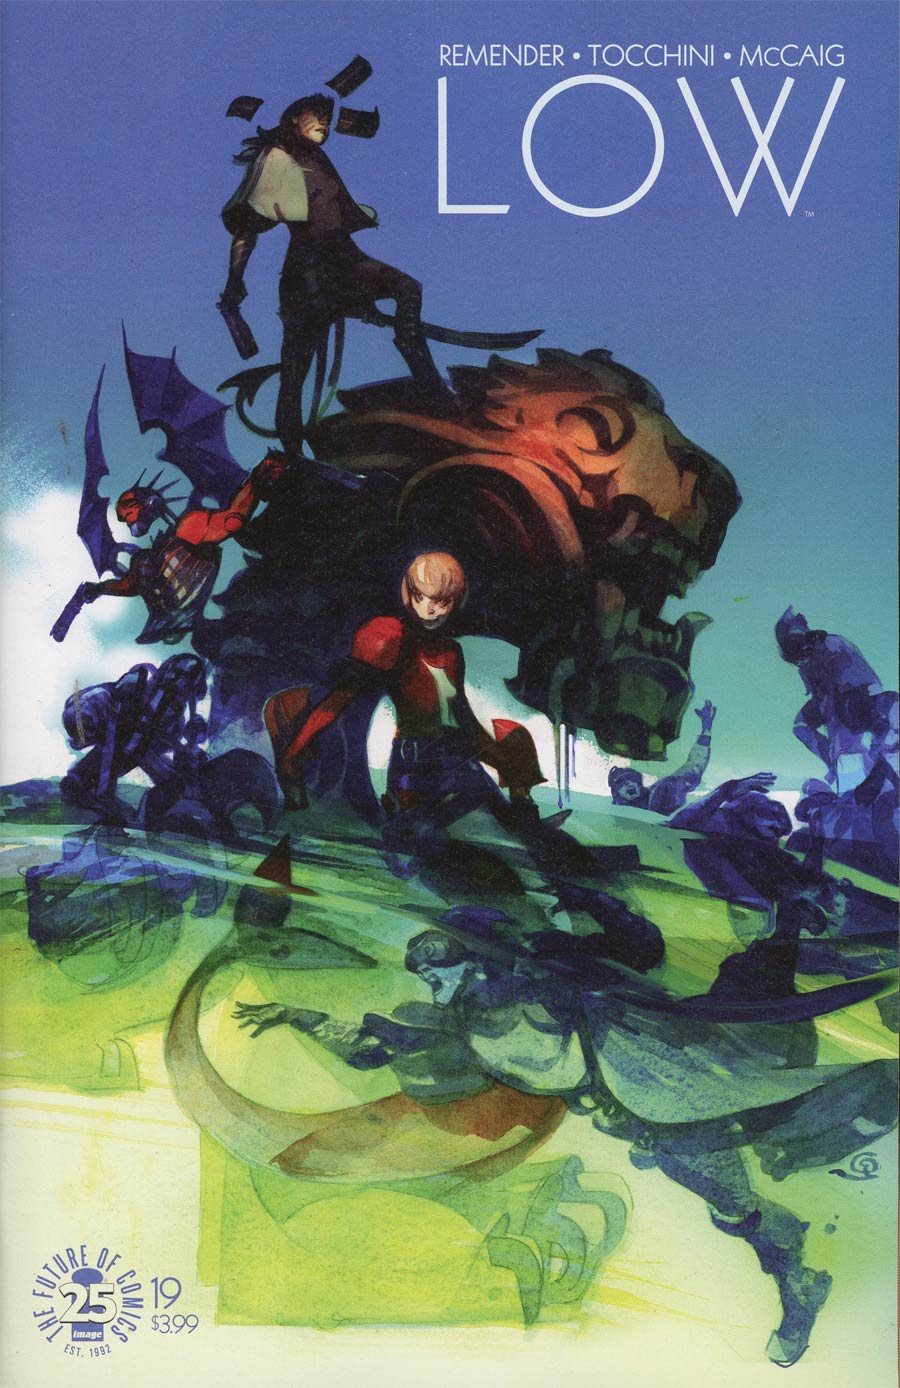 Low #19 Cover A Greg Tocchini & Dave McCaig